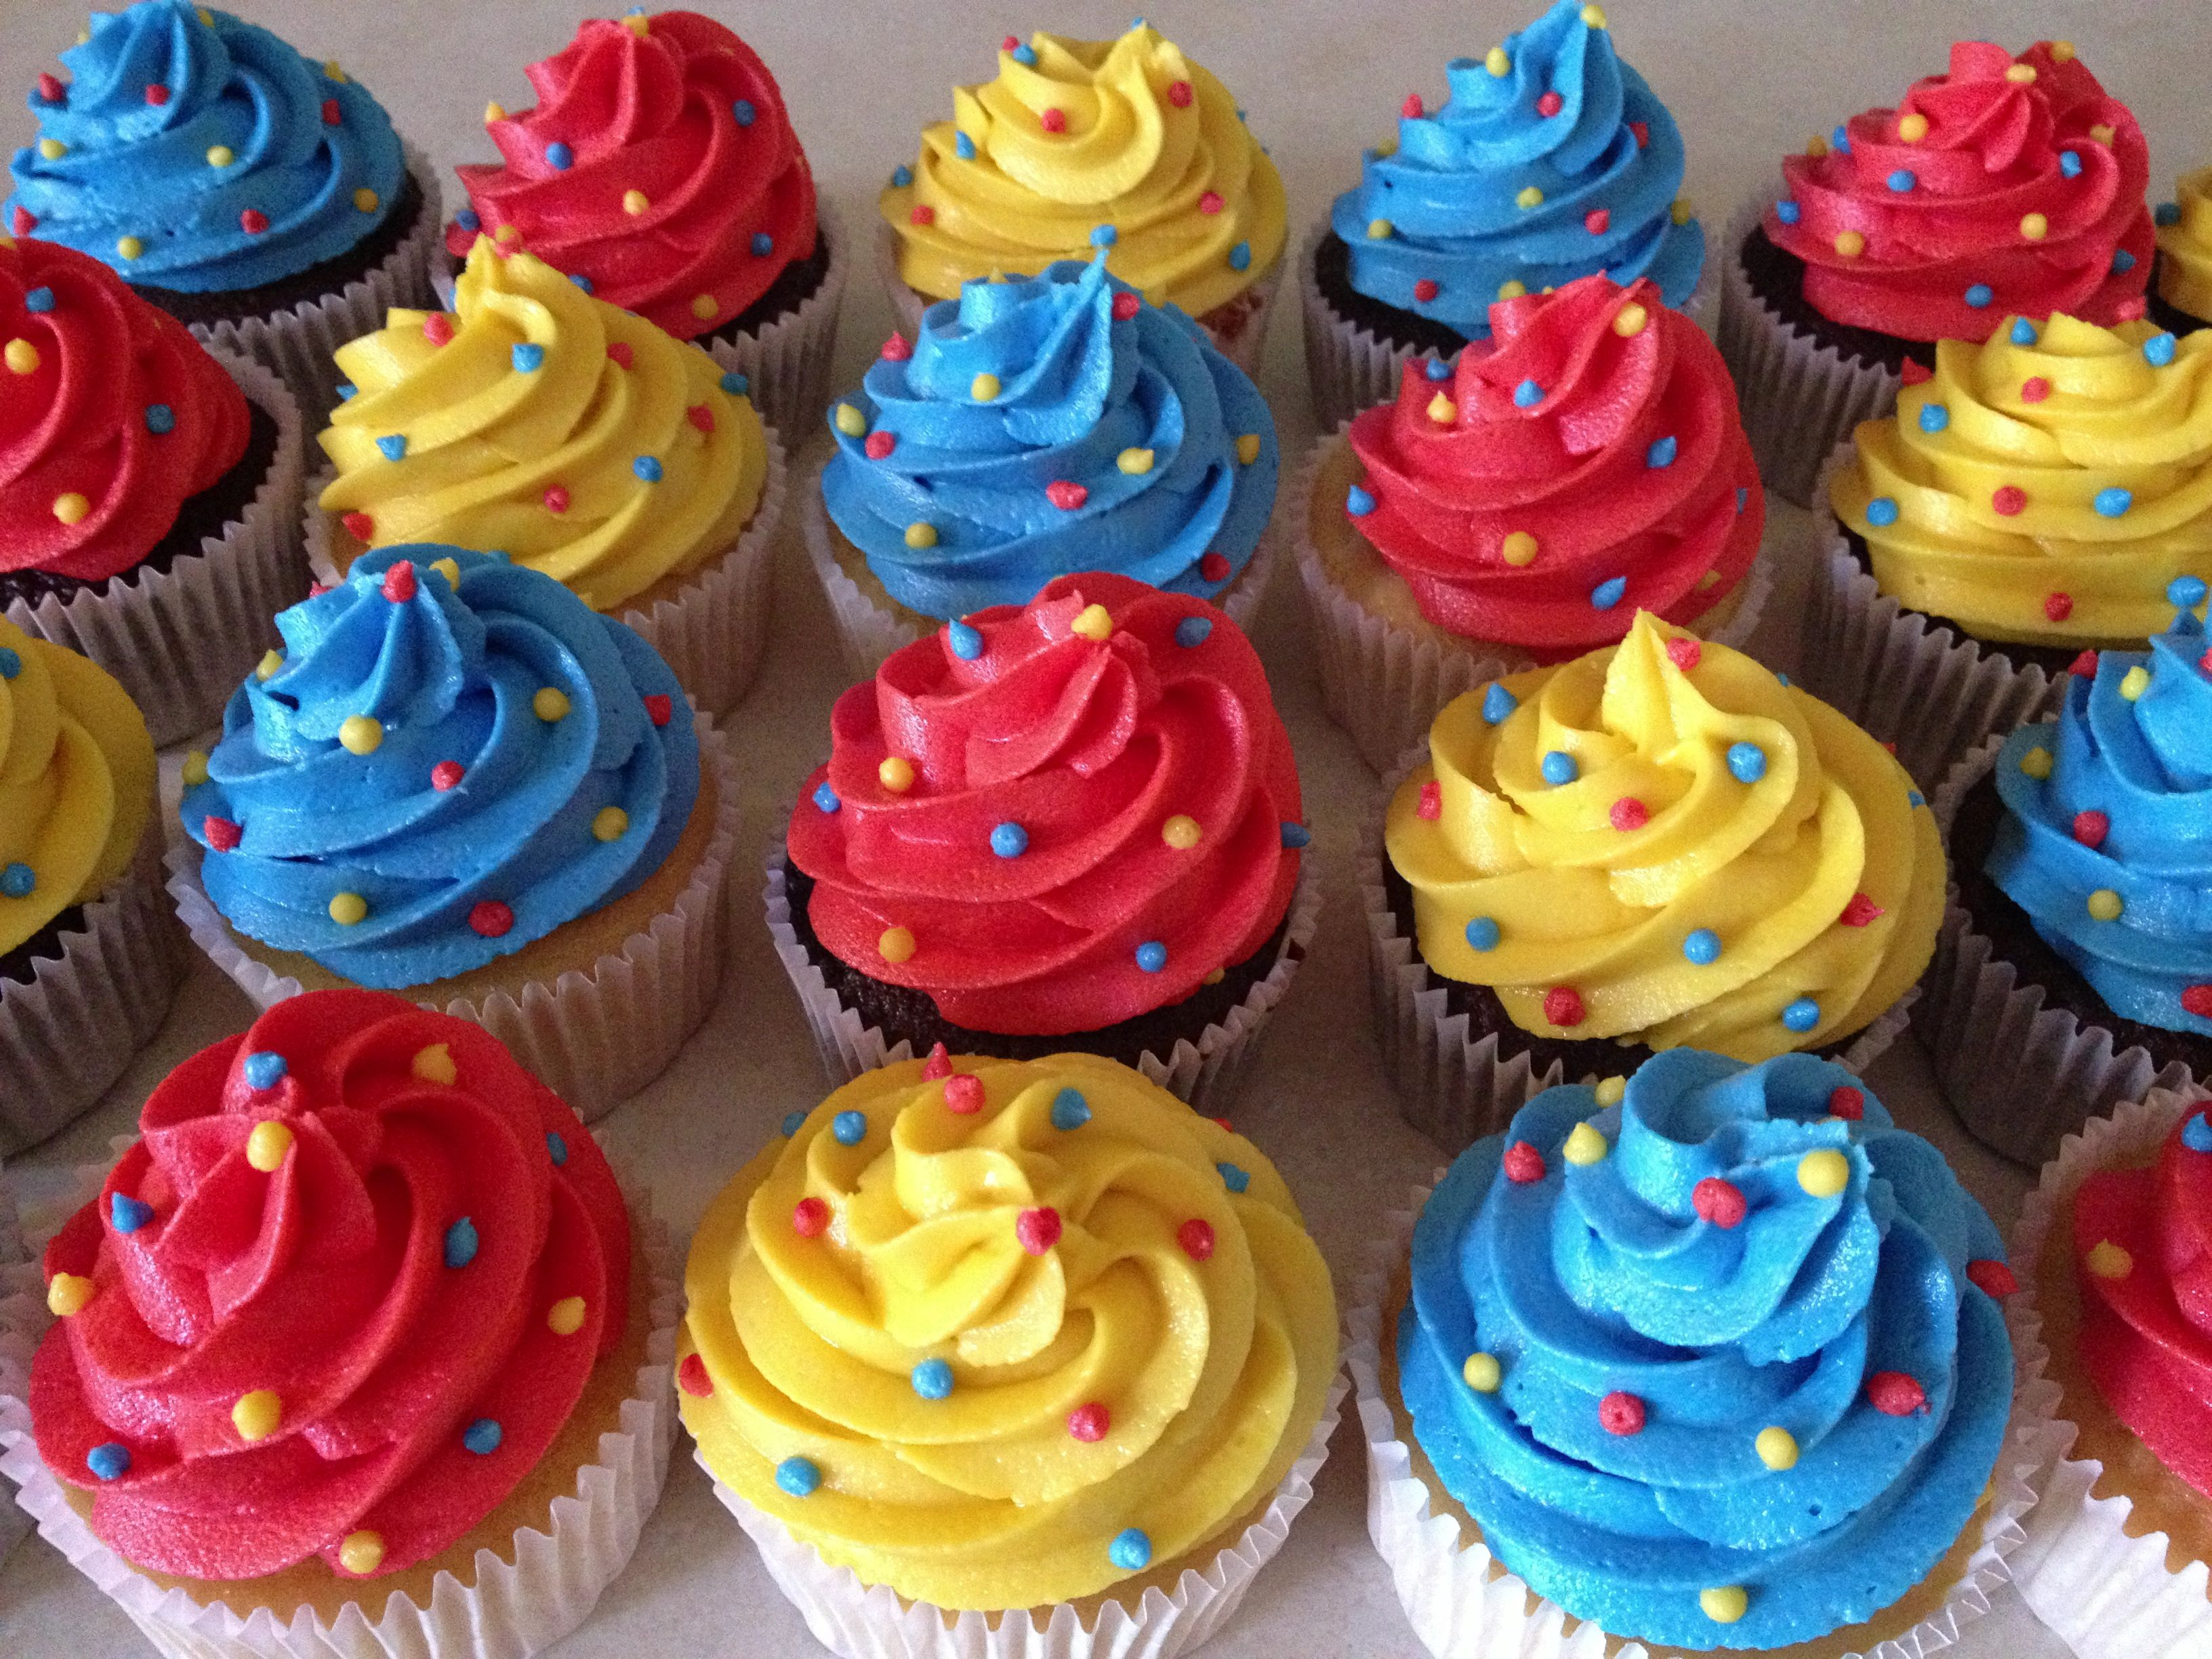 Primary Color Cupcakes | My Cakes & Bakes | Pinterest | Primary ...